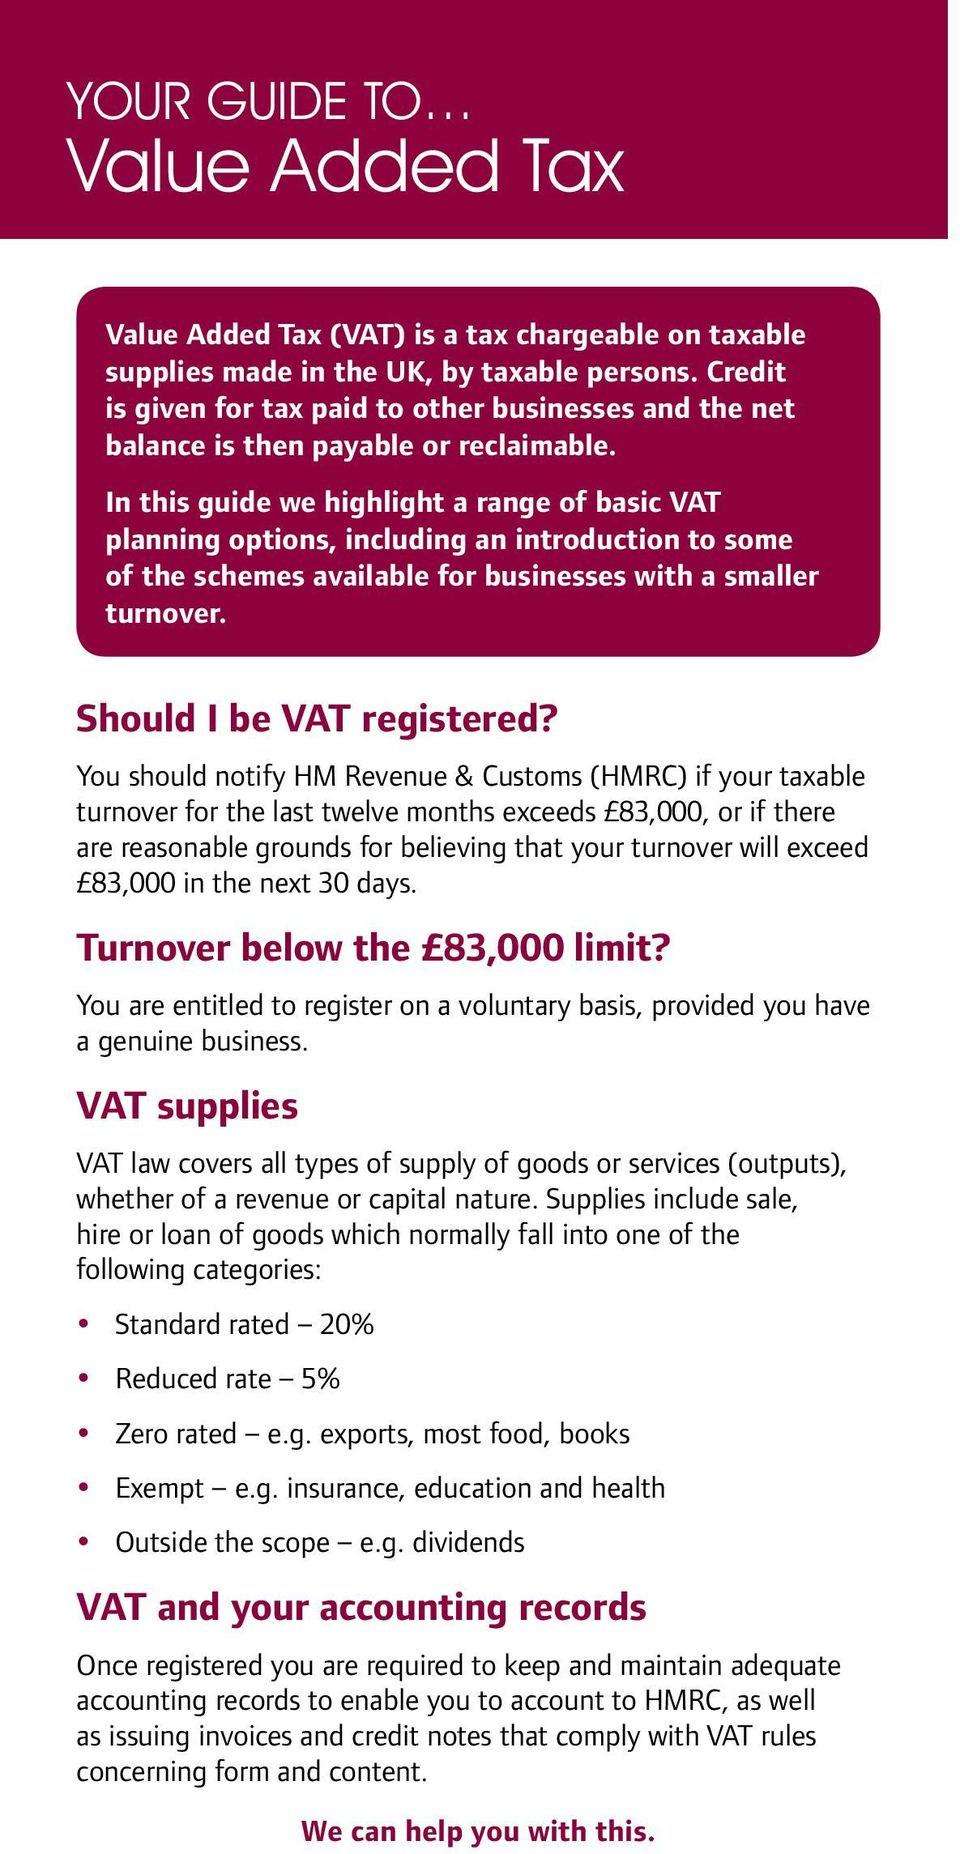 In this guide we highlight a range of basic VAT planning options, including an introduction to some of the schemes available for businesses with a smaller turnover. Should I be VAT registered?